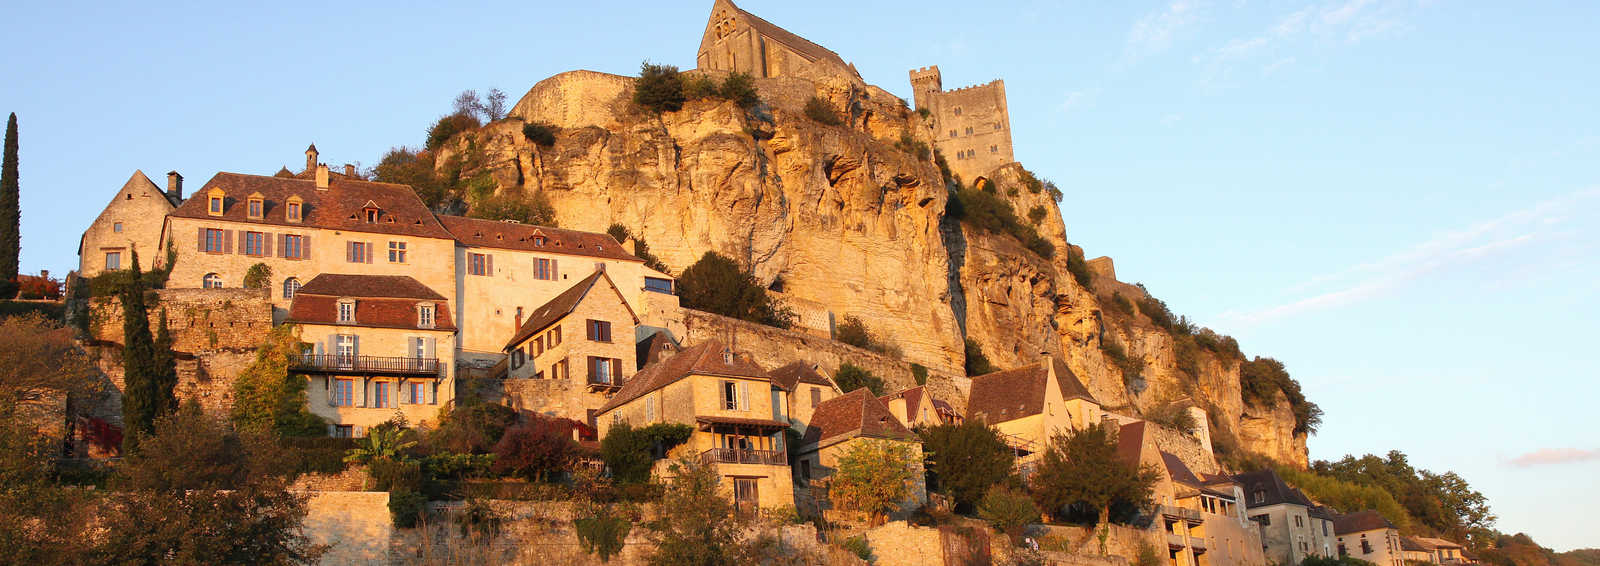 Beynac village, Dordogne, France